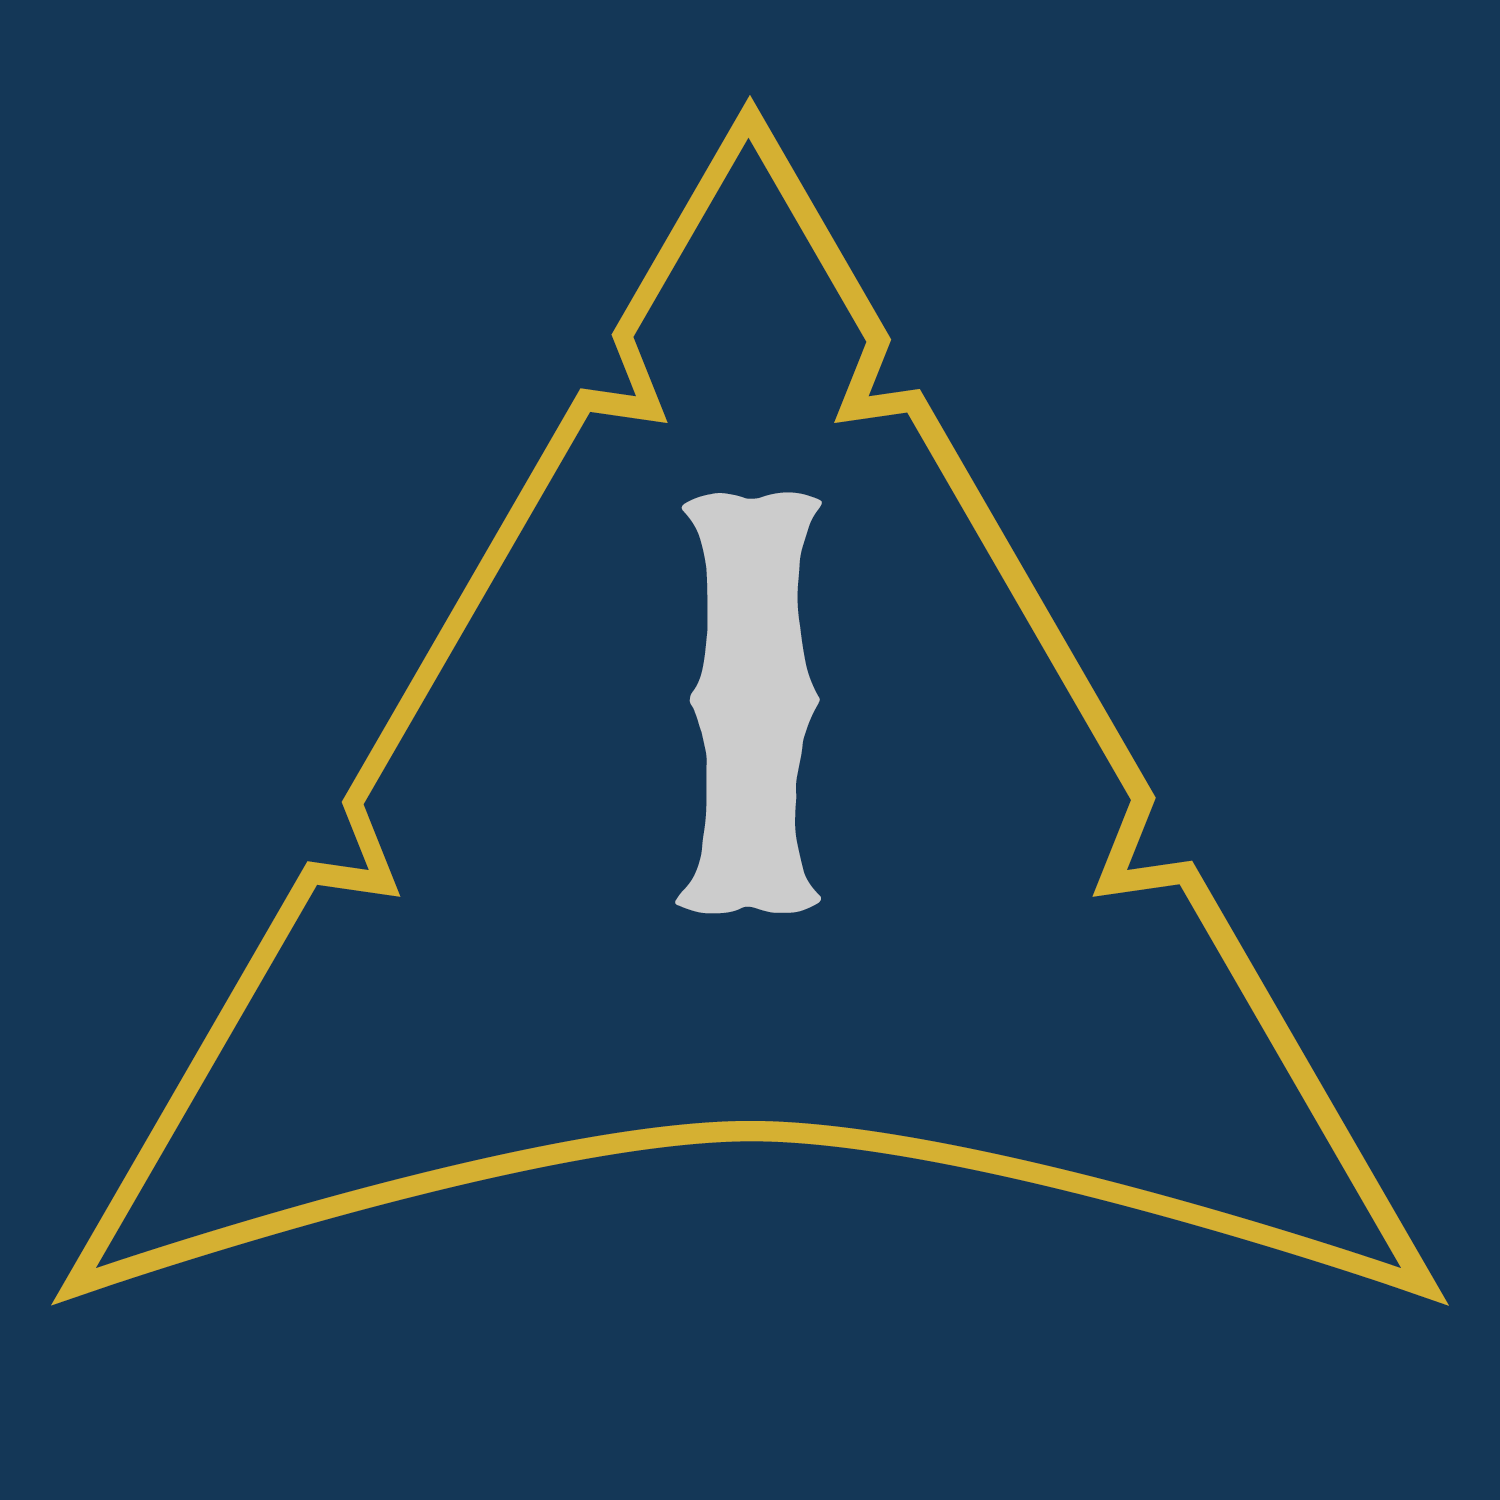 Logo 1 -  Could be used on Caps, and shirts